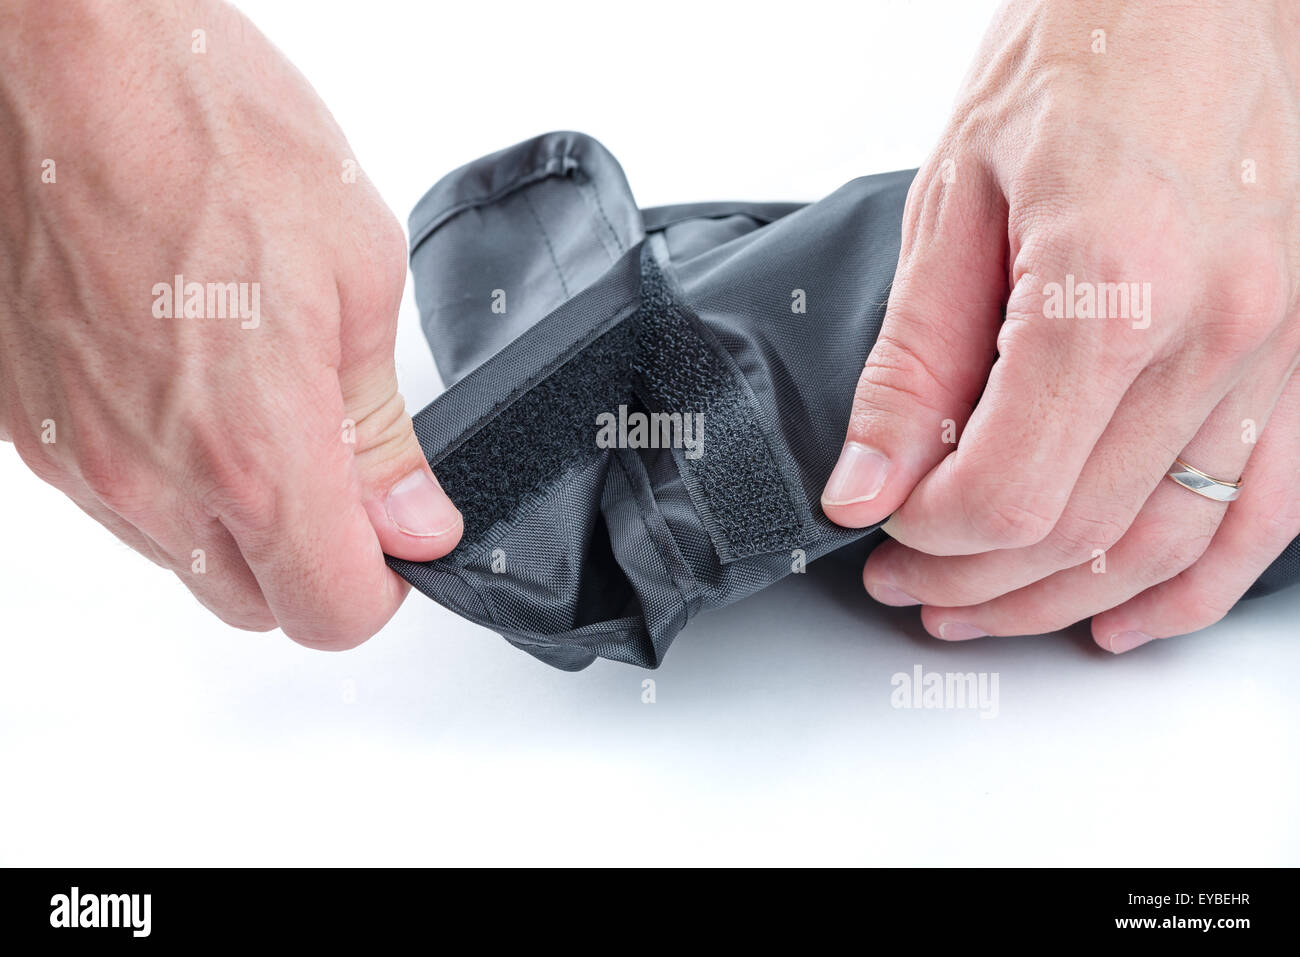 A close up shot of men's hands opening a black case closed with a velcro fastener on a white background. - Stock Image